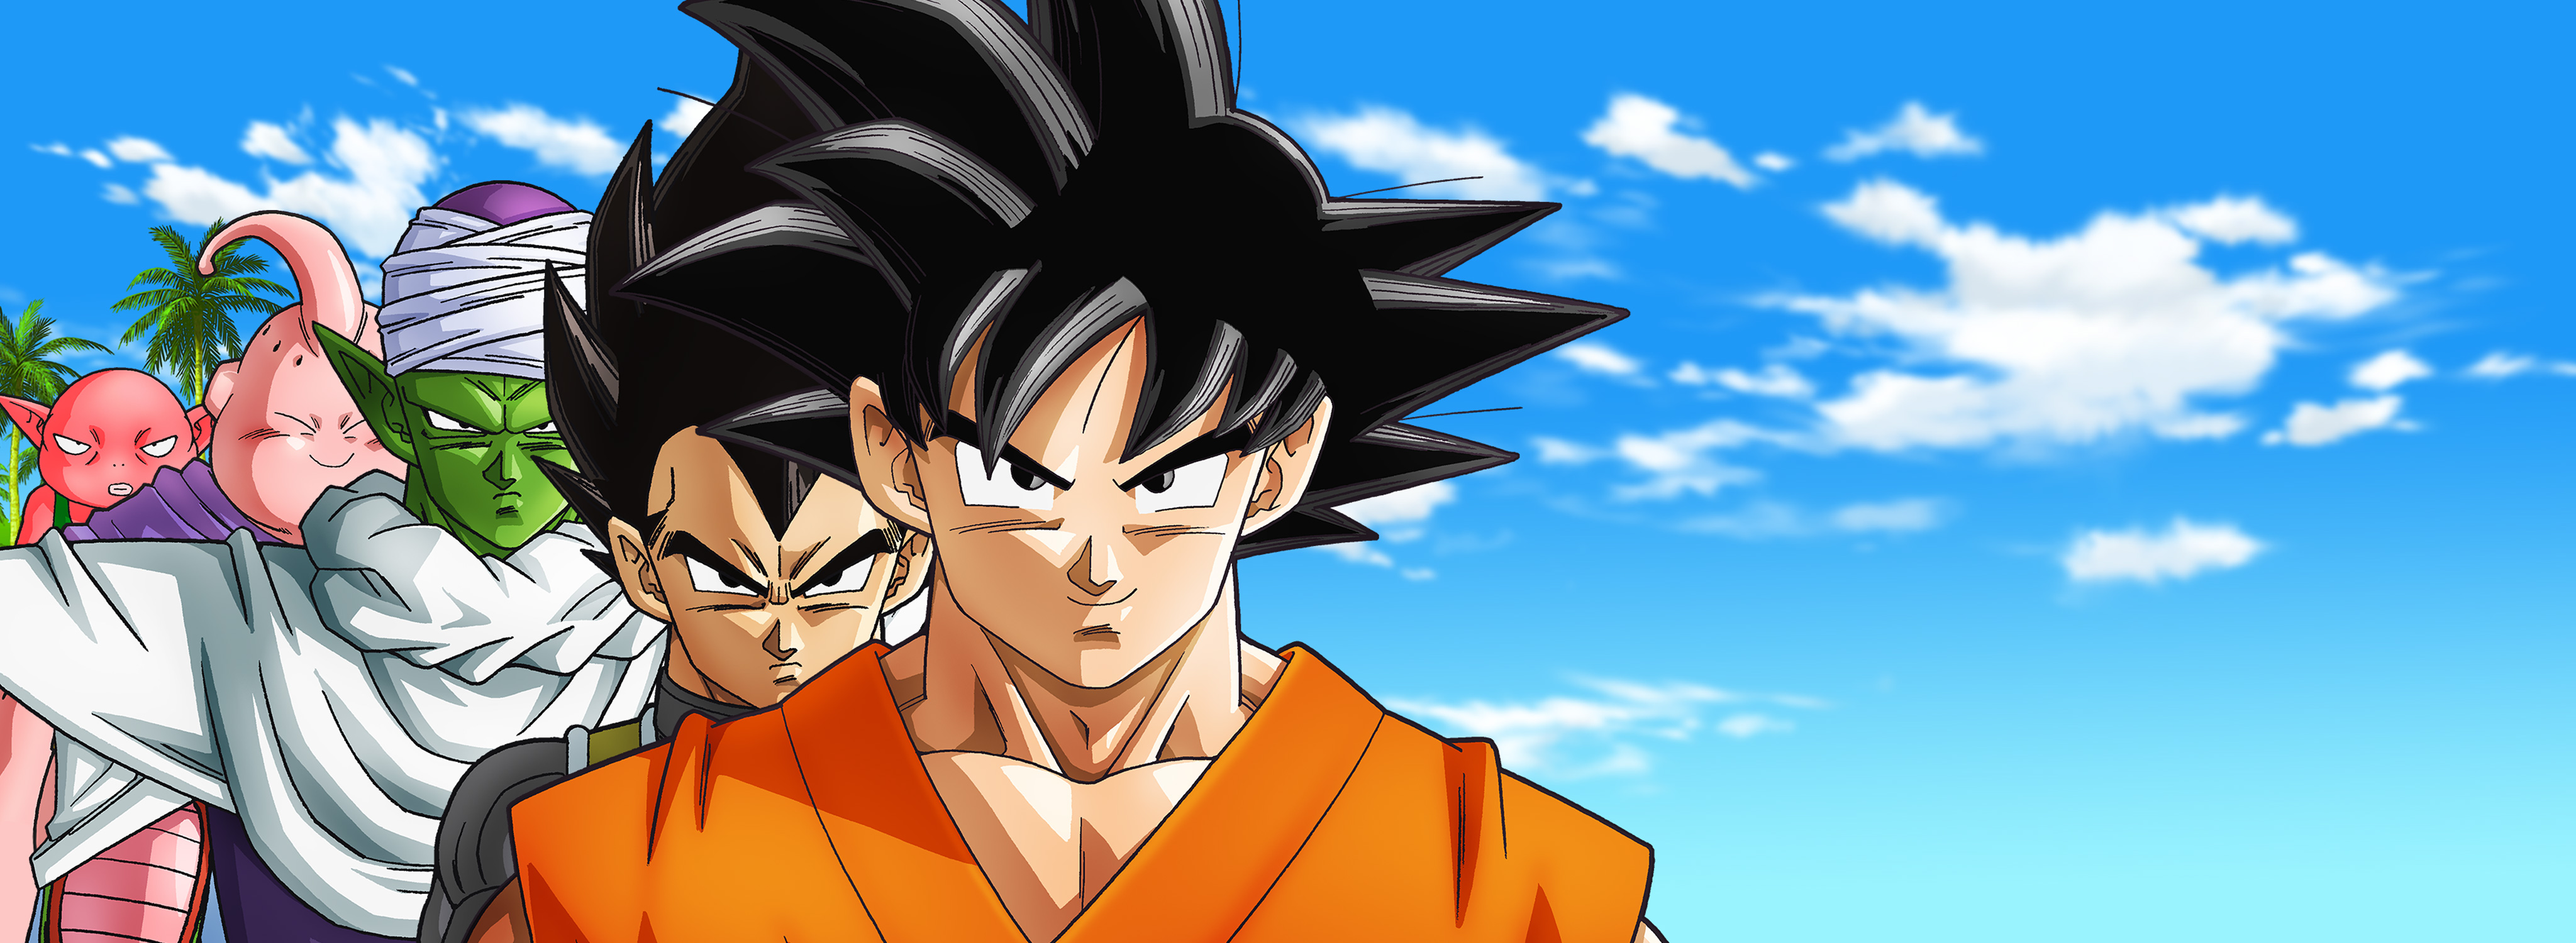 Dragon Ball Super Hd Wallpaper Background Image 4096x1500 Id